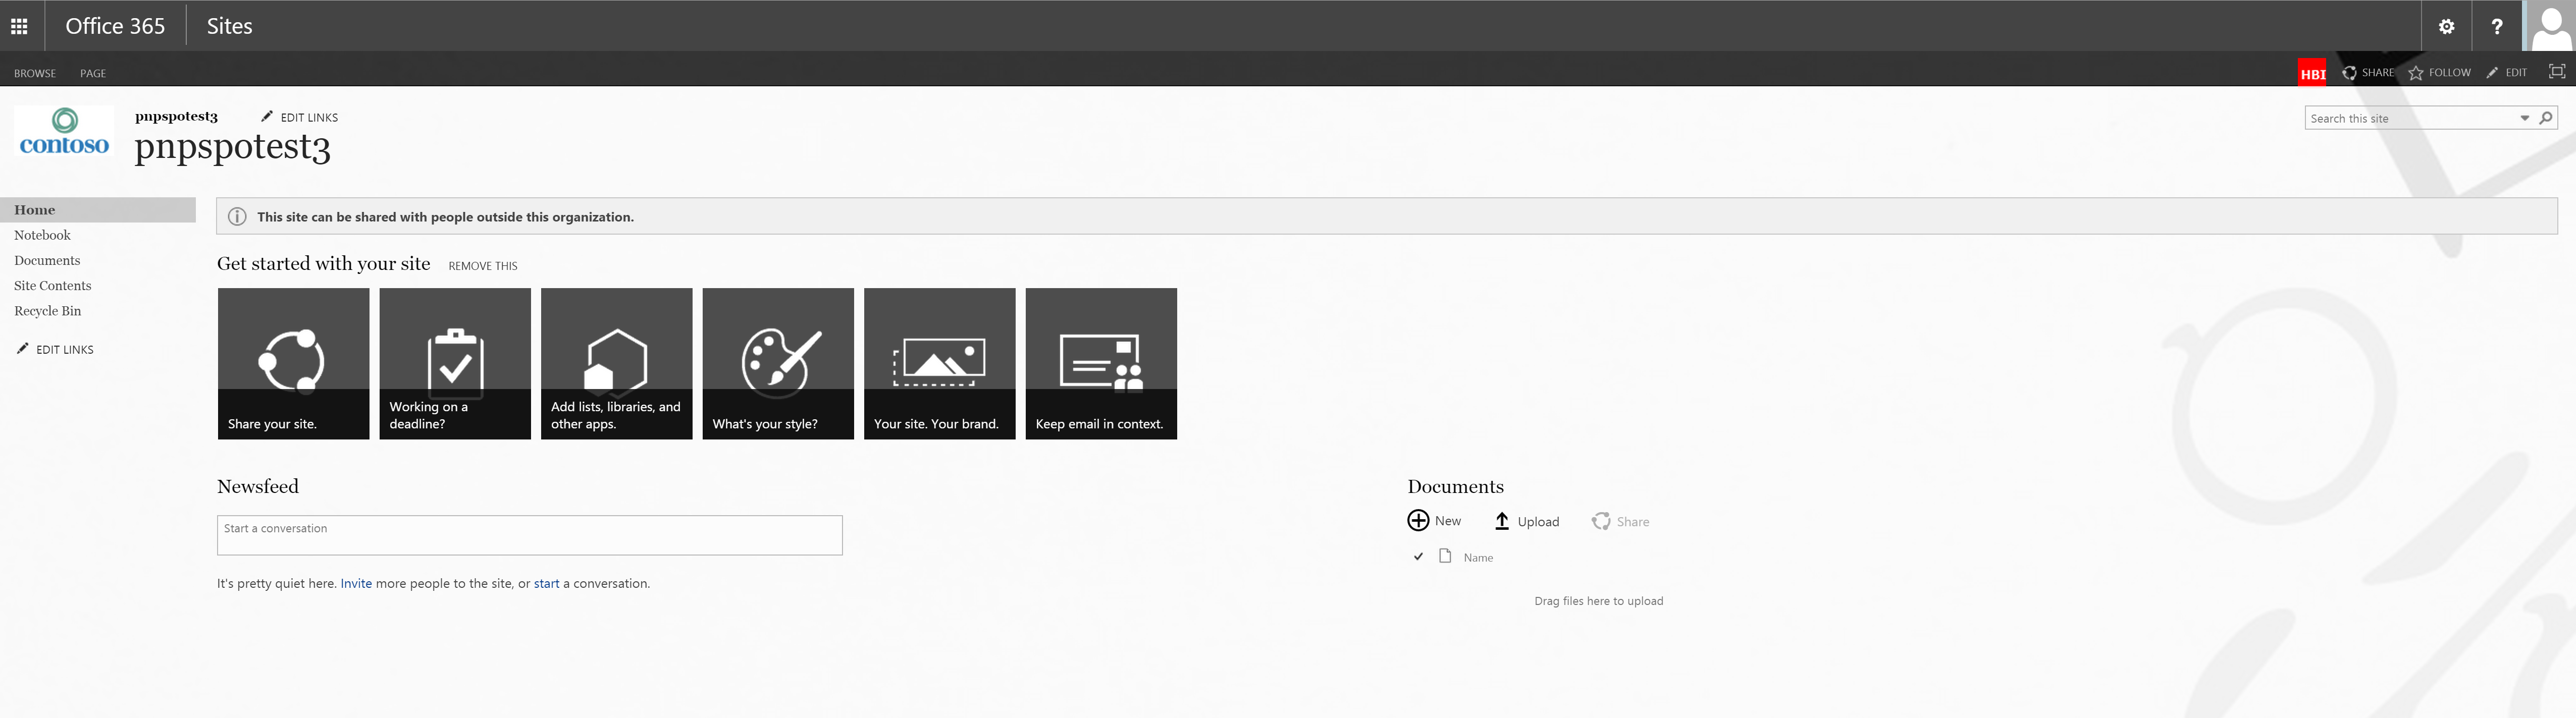 External sharing notification banner shown in team site